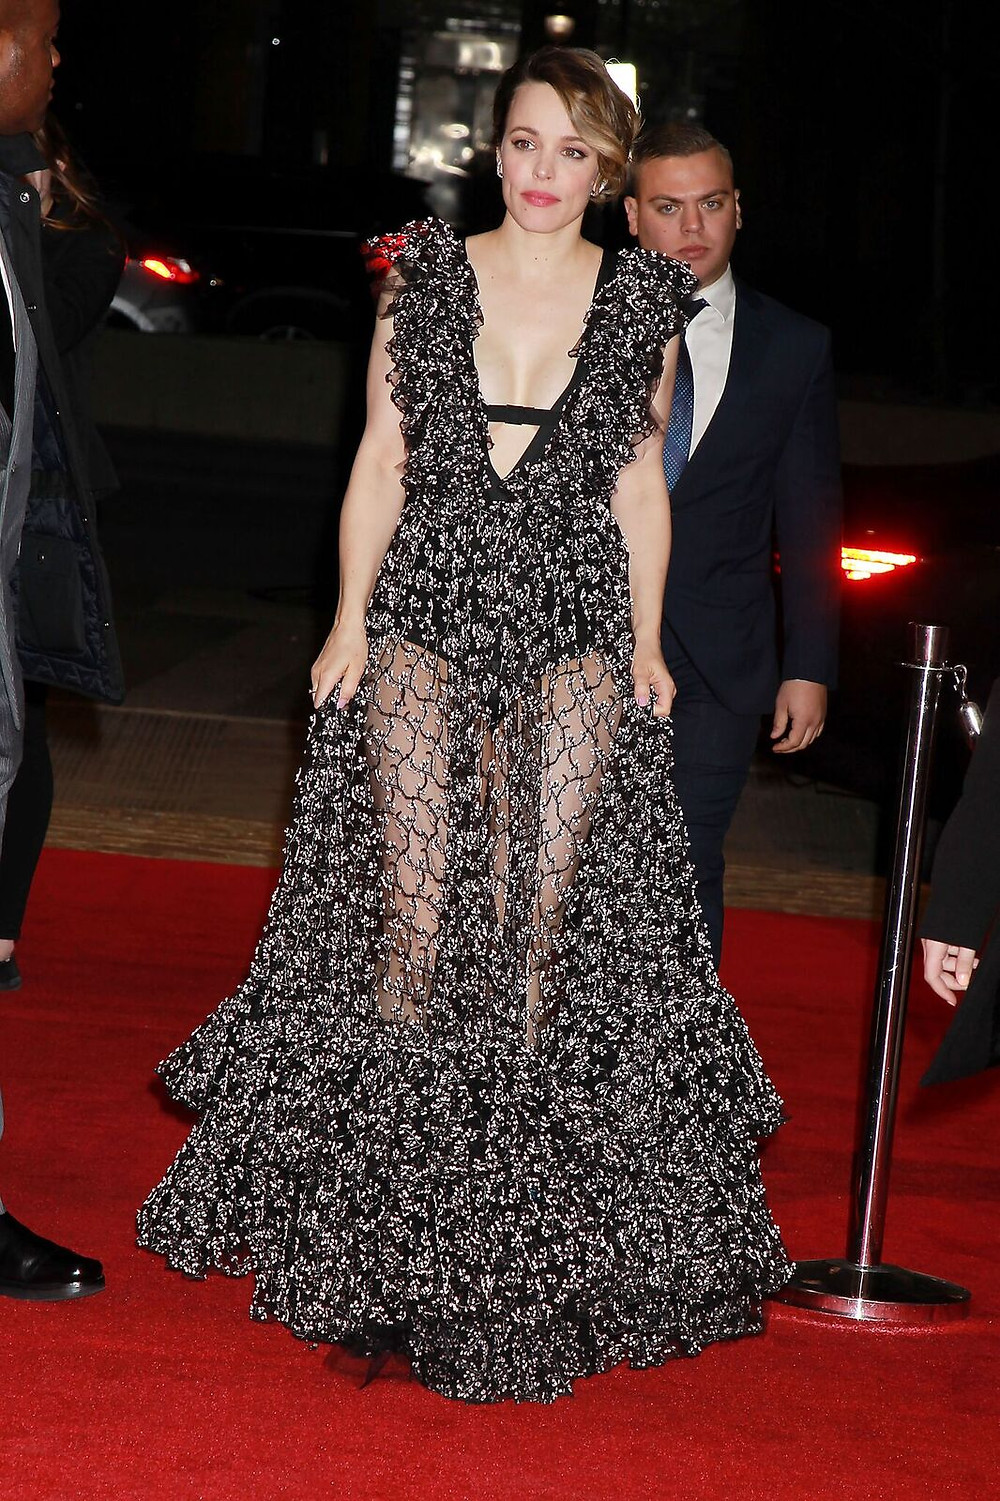 Rachel McAdams arrives at the 2018 Tribeca Film Festival premiere of Disobedience.